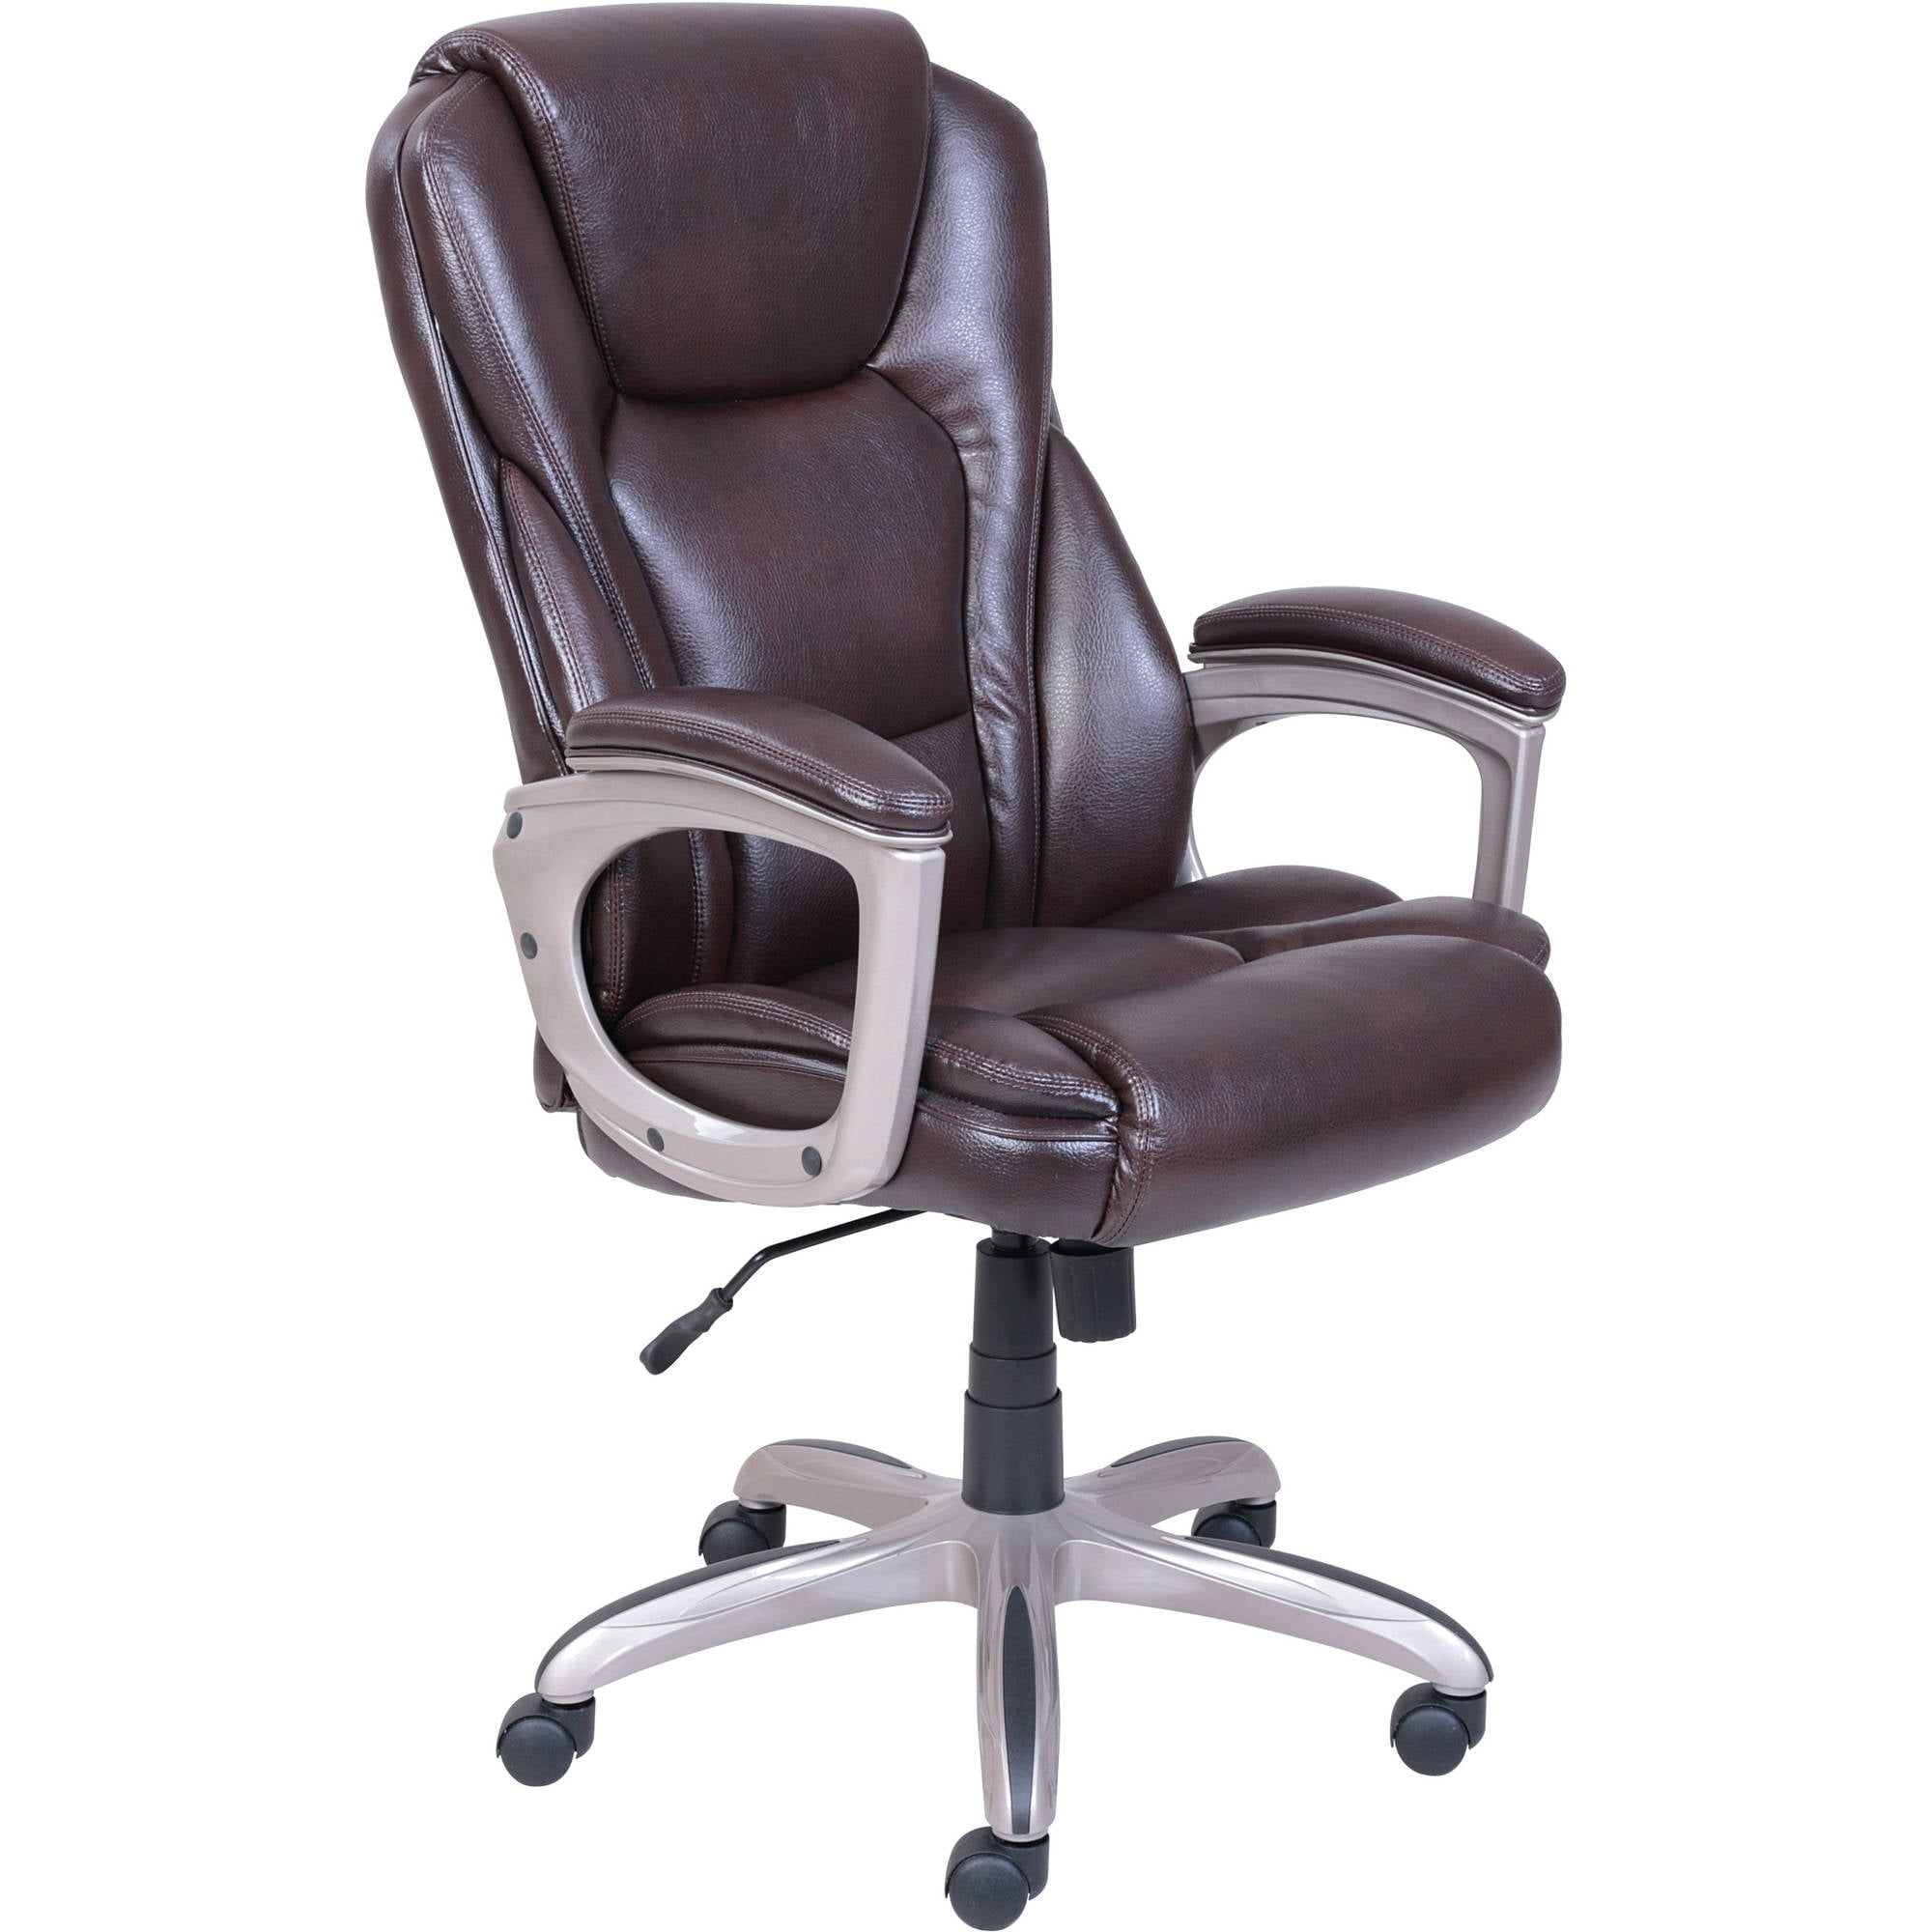 Serta Big & Tall mercial fice Chair with Memory Foam